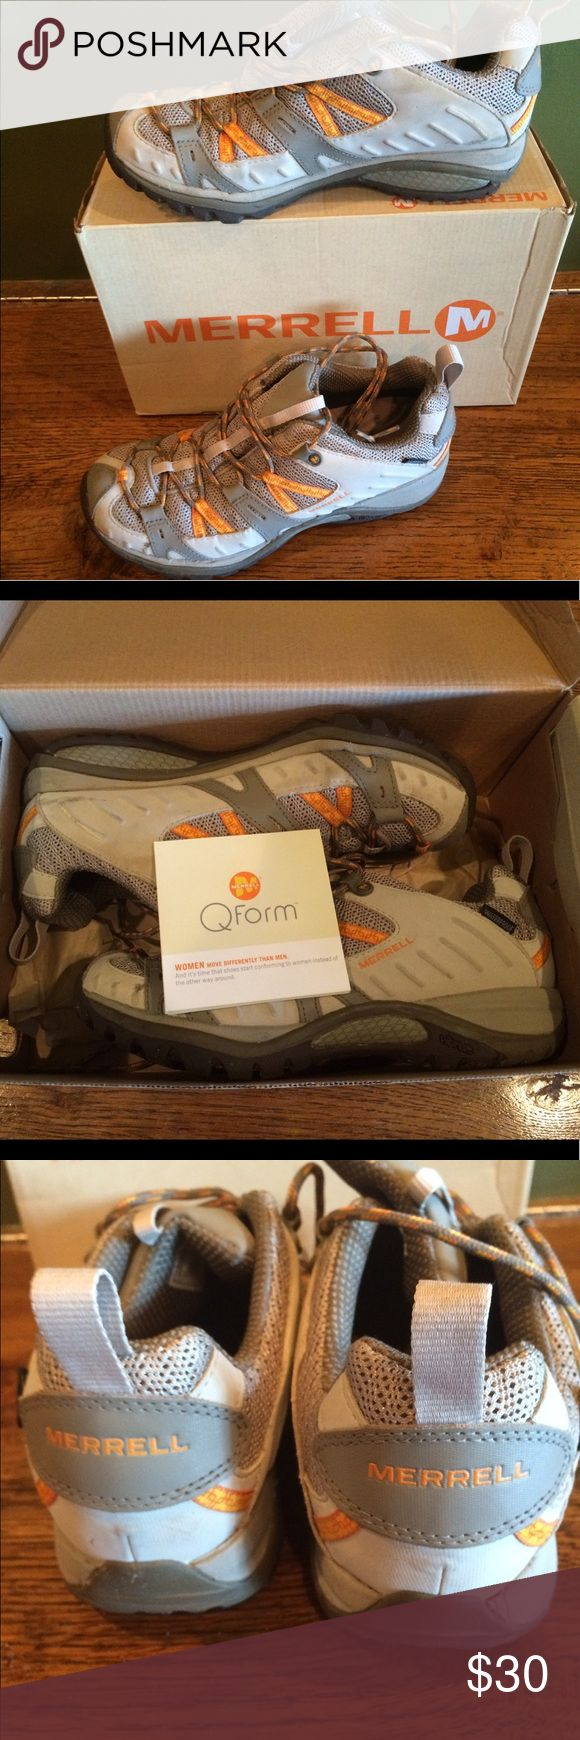 Merrell trekking shoes Look like they've been worn maybe once and are ready to hit the trail! They Come with the box. Merrell Shoes Athletic Shoes